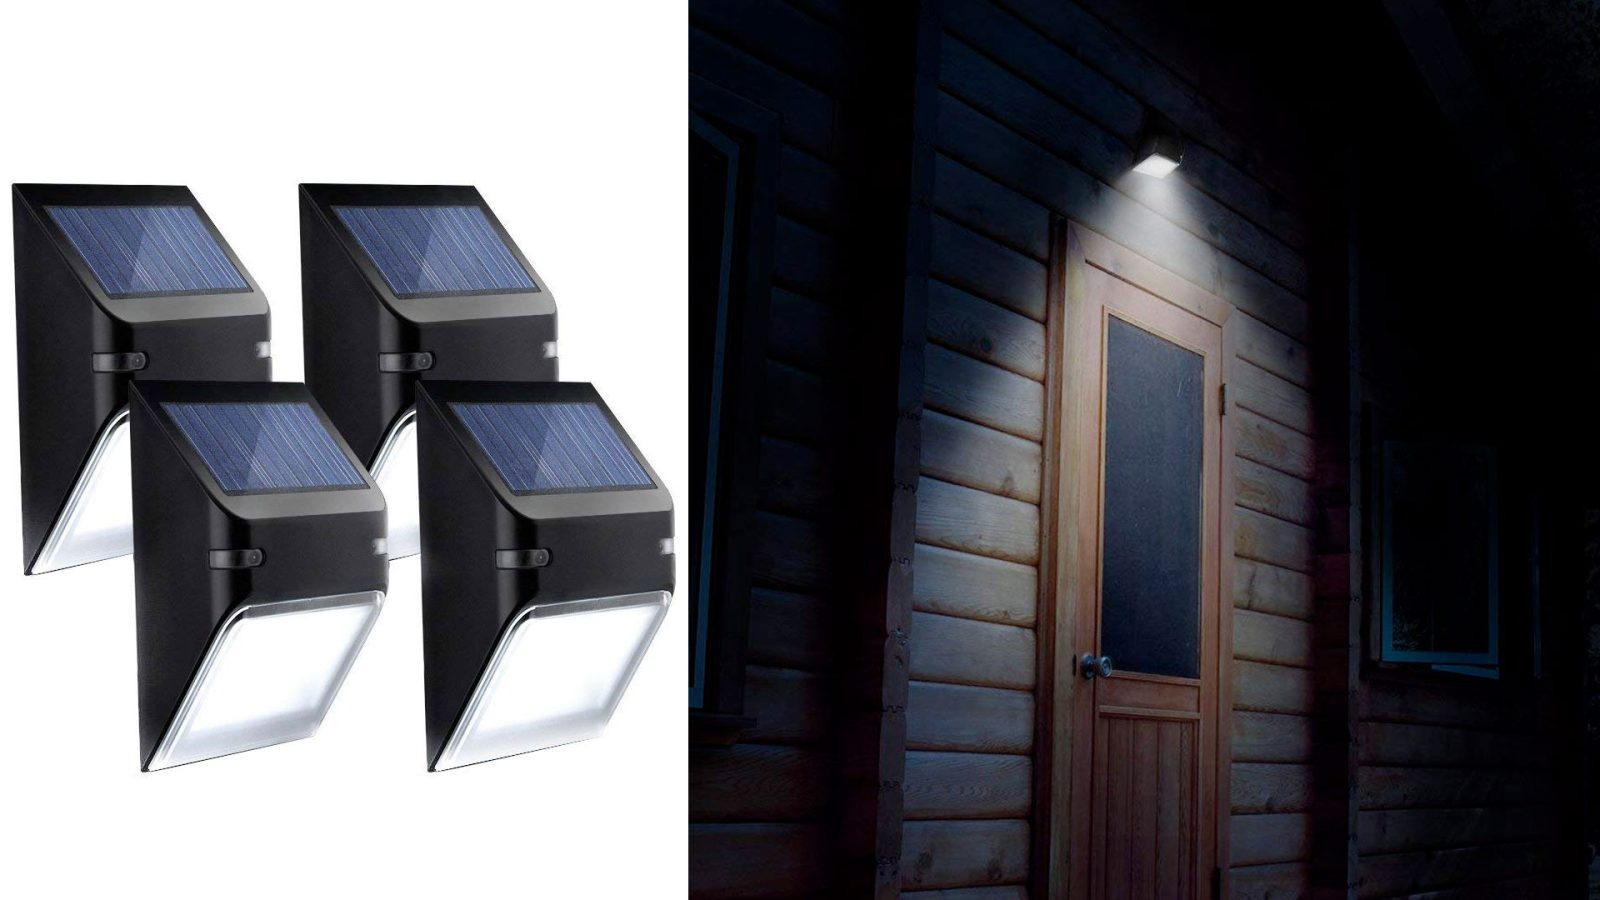 hight resolution of illuminate your yard without wires by using this 4 pack of solar lights for just 10 shipped